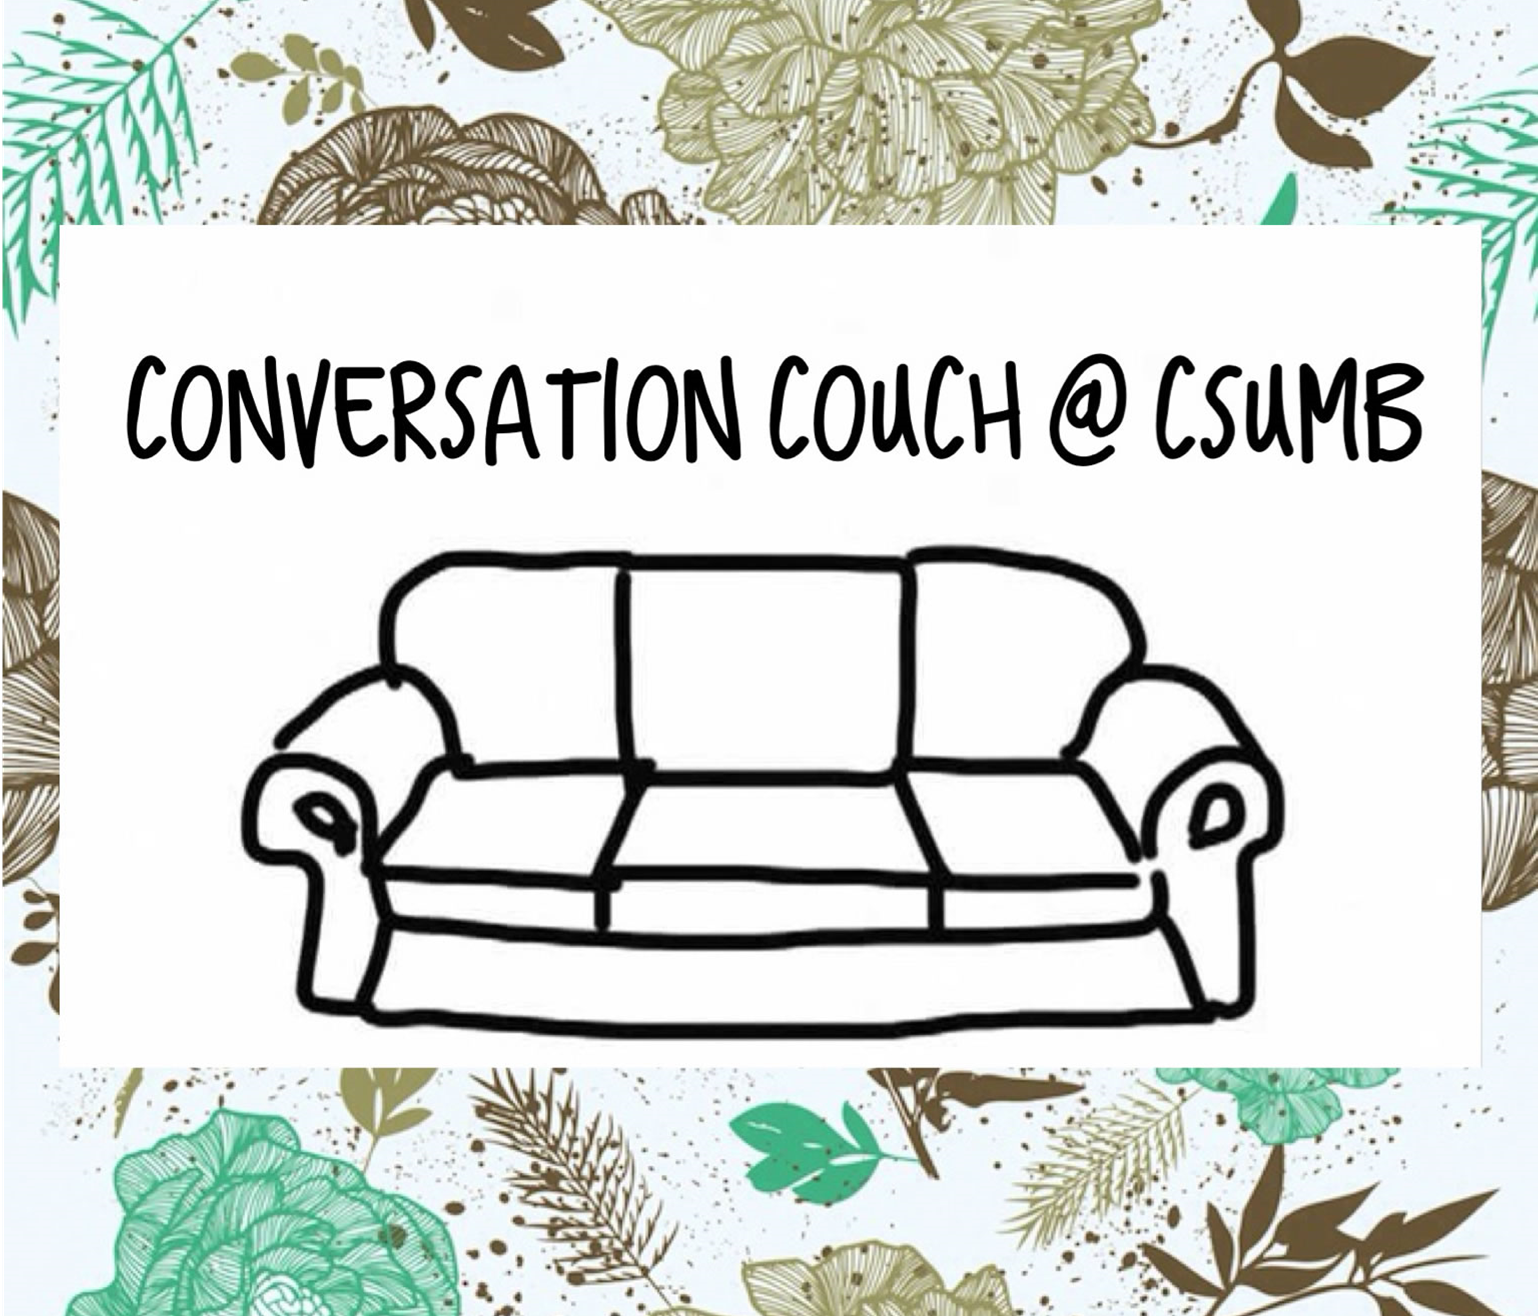 Conversation couch